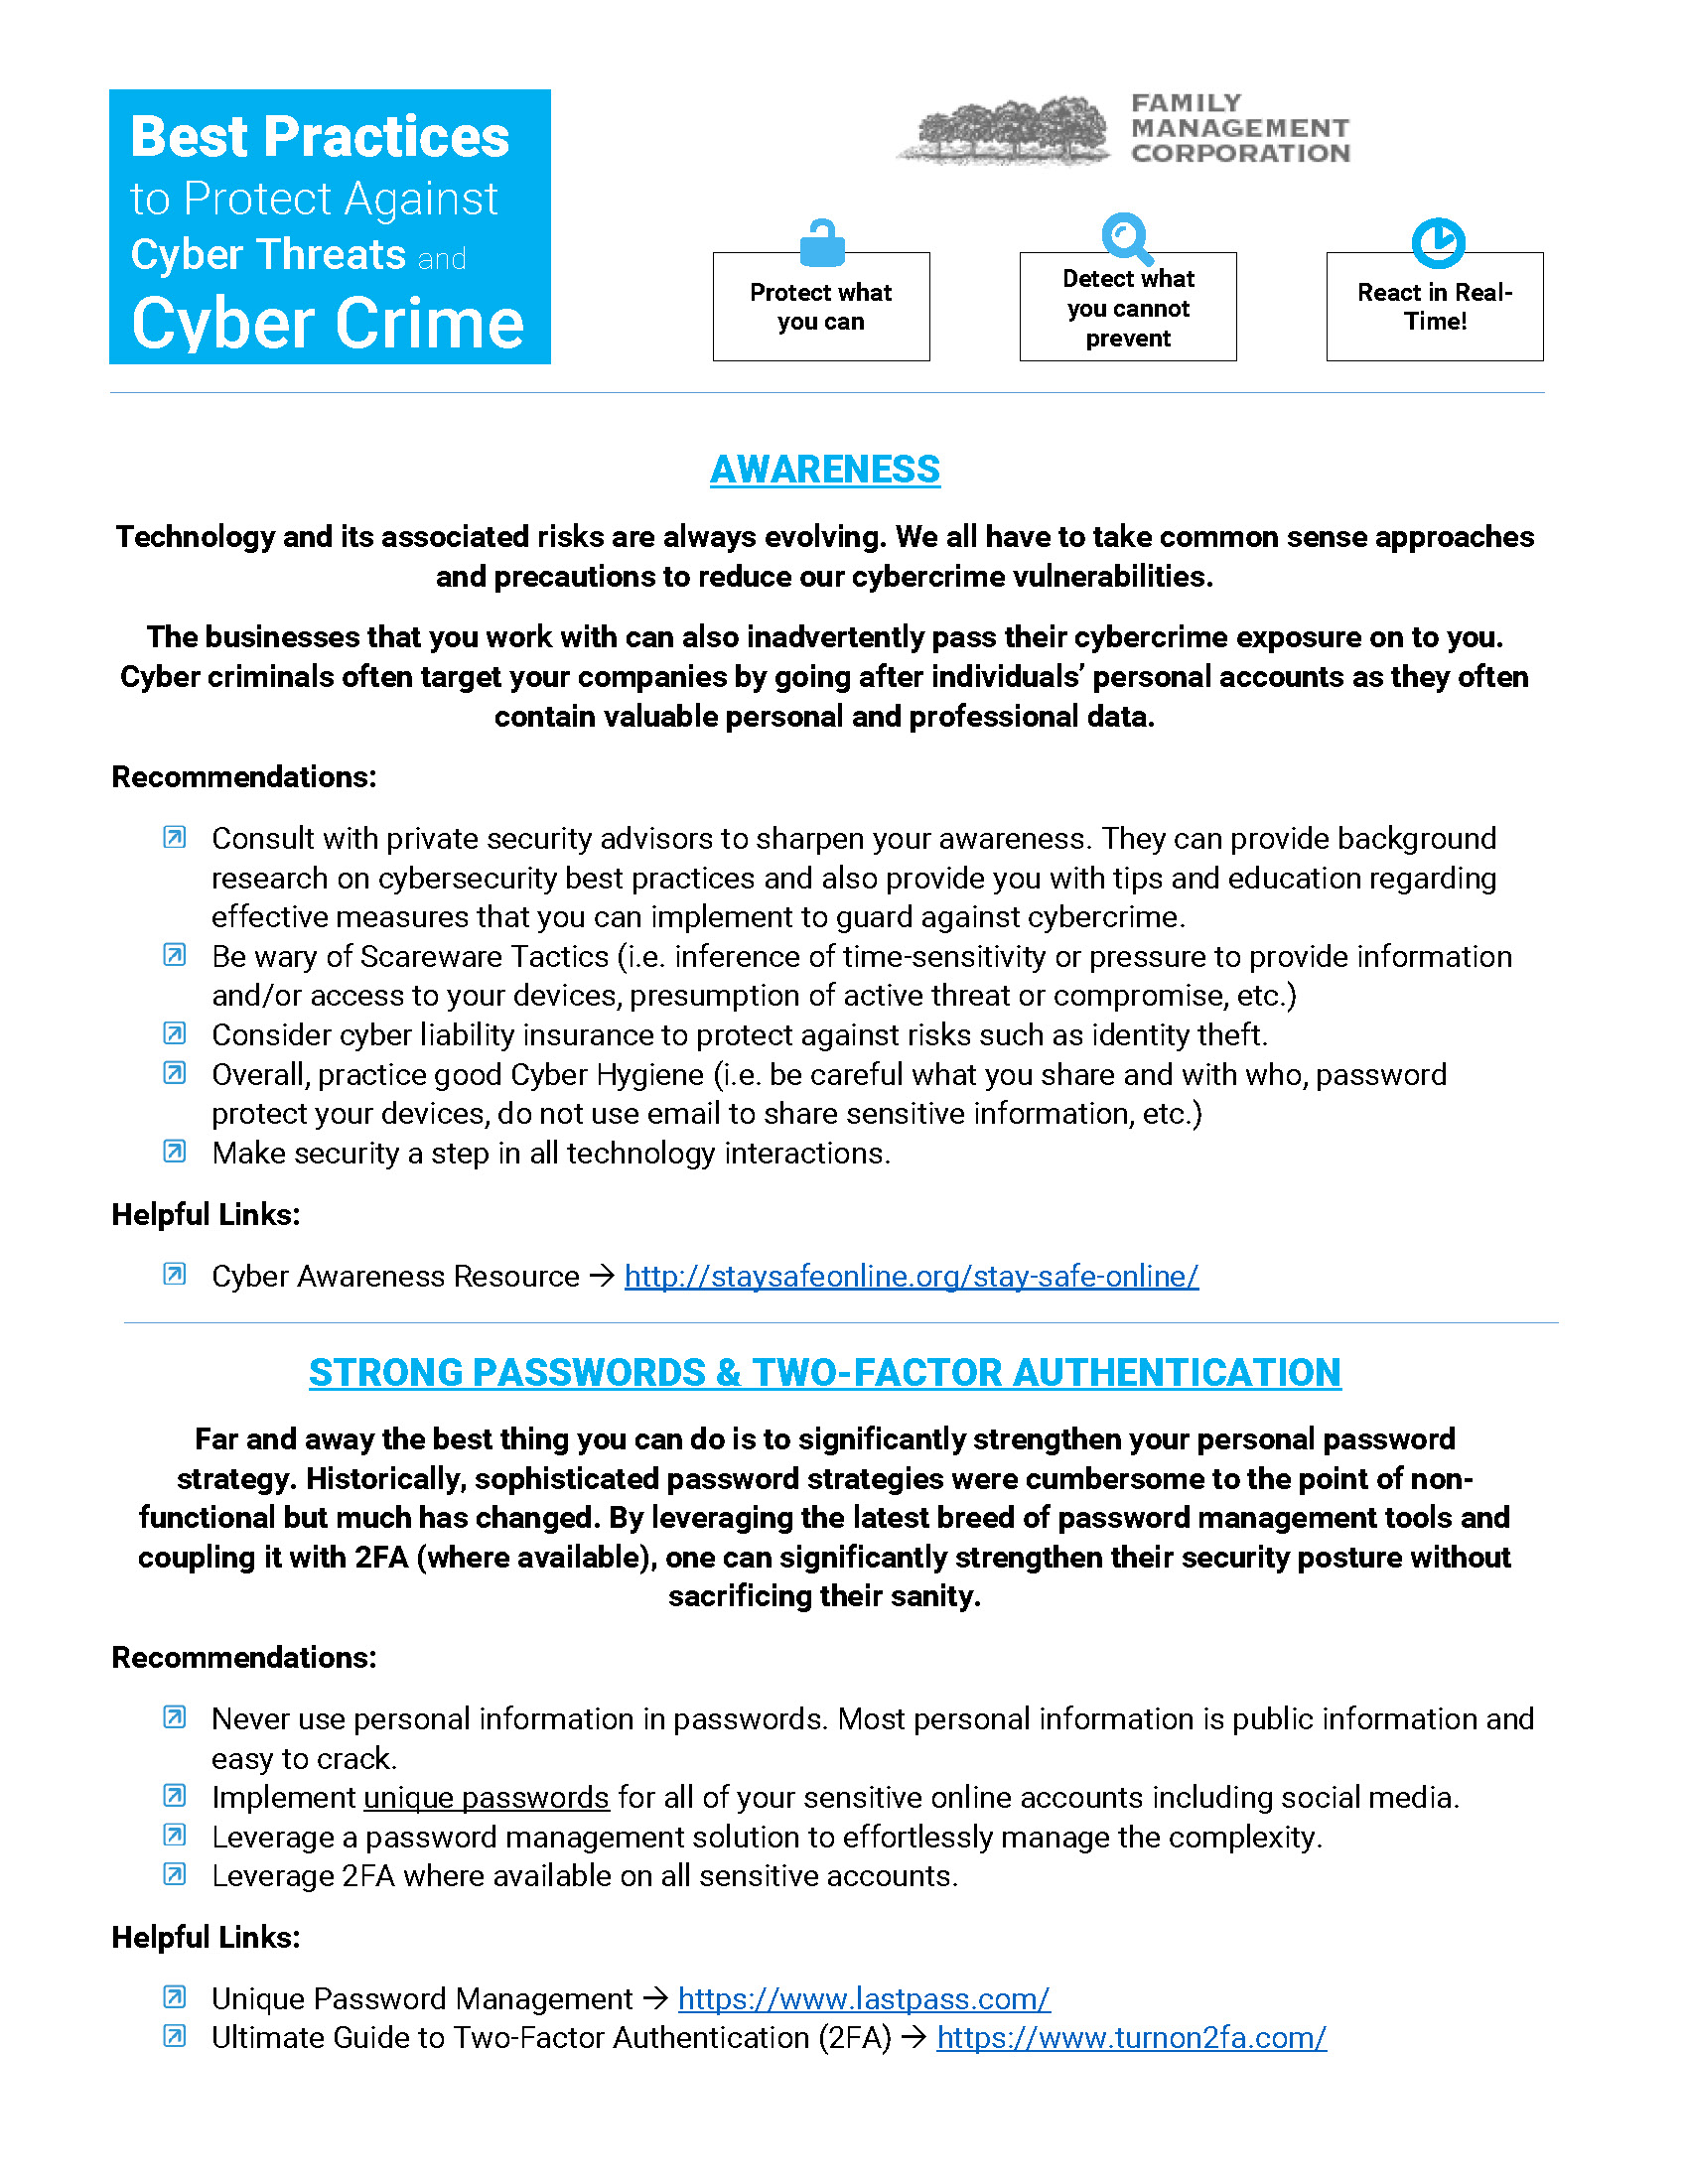 Best Practices Guide Cybersecurity 2 Page 1